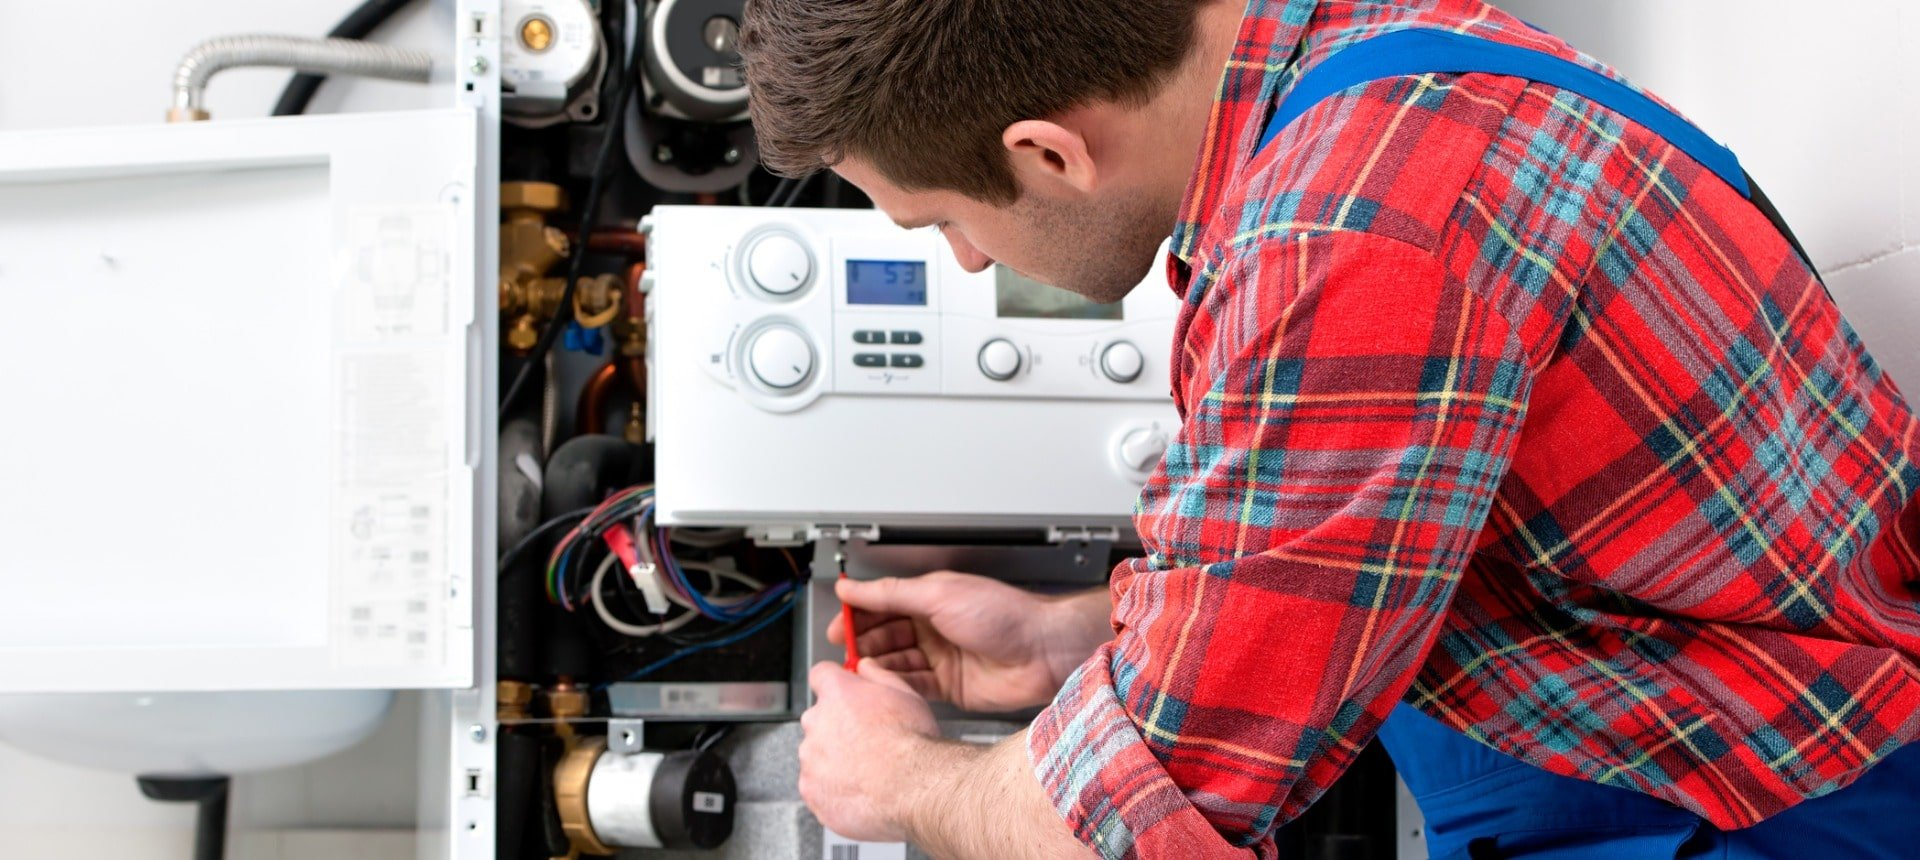 technician-servicing-heating-boiler-picture-id482115611-min